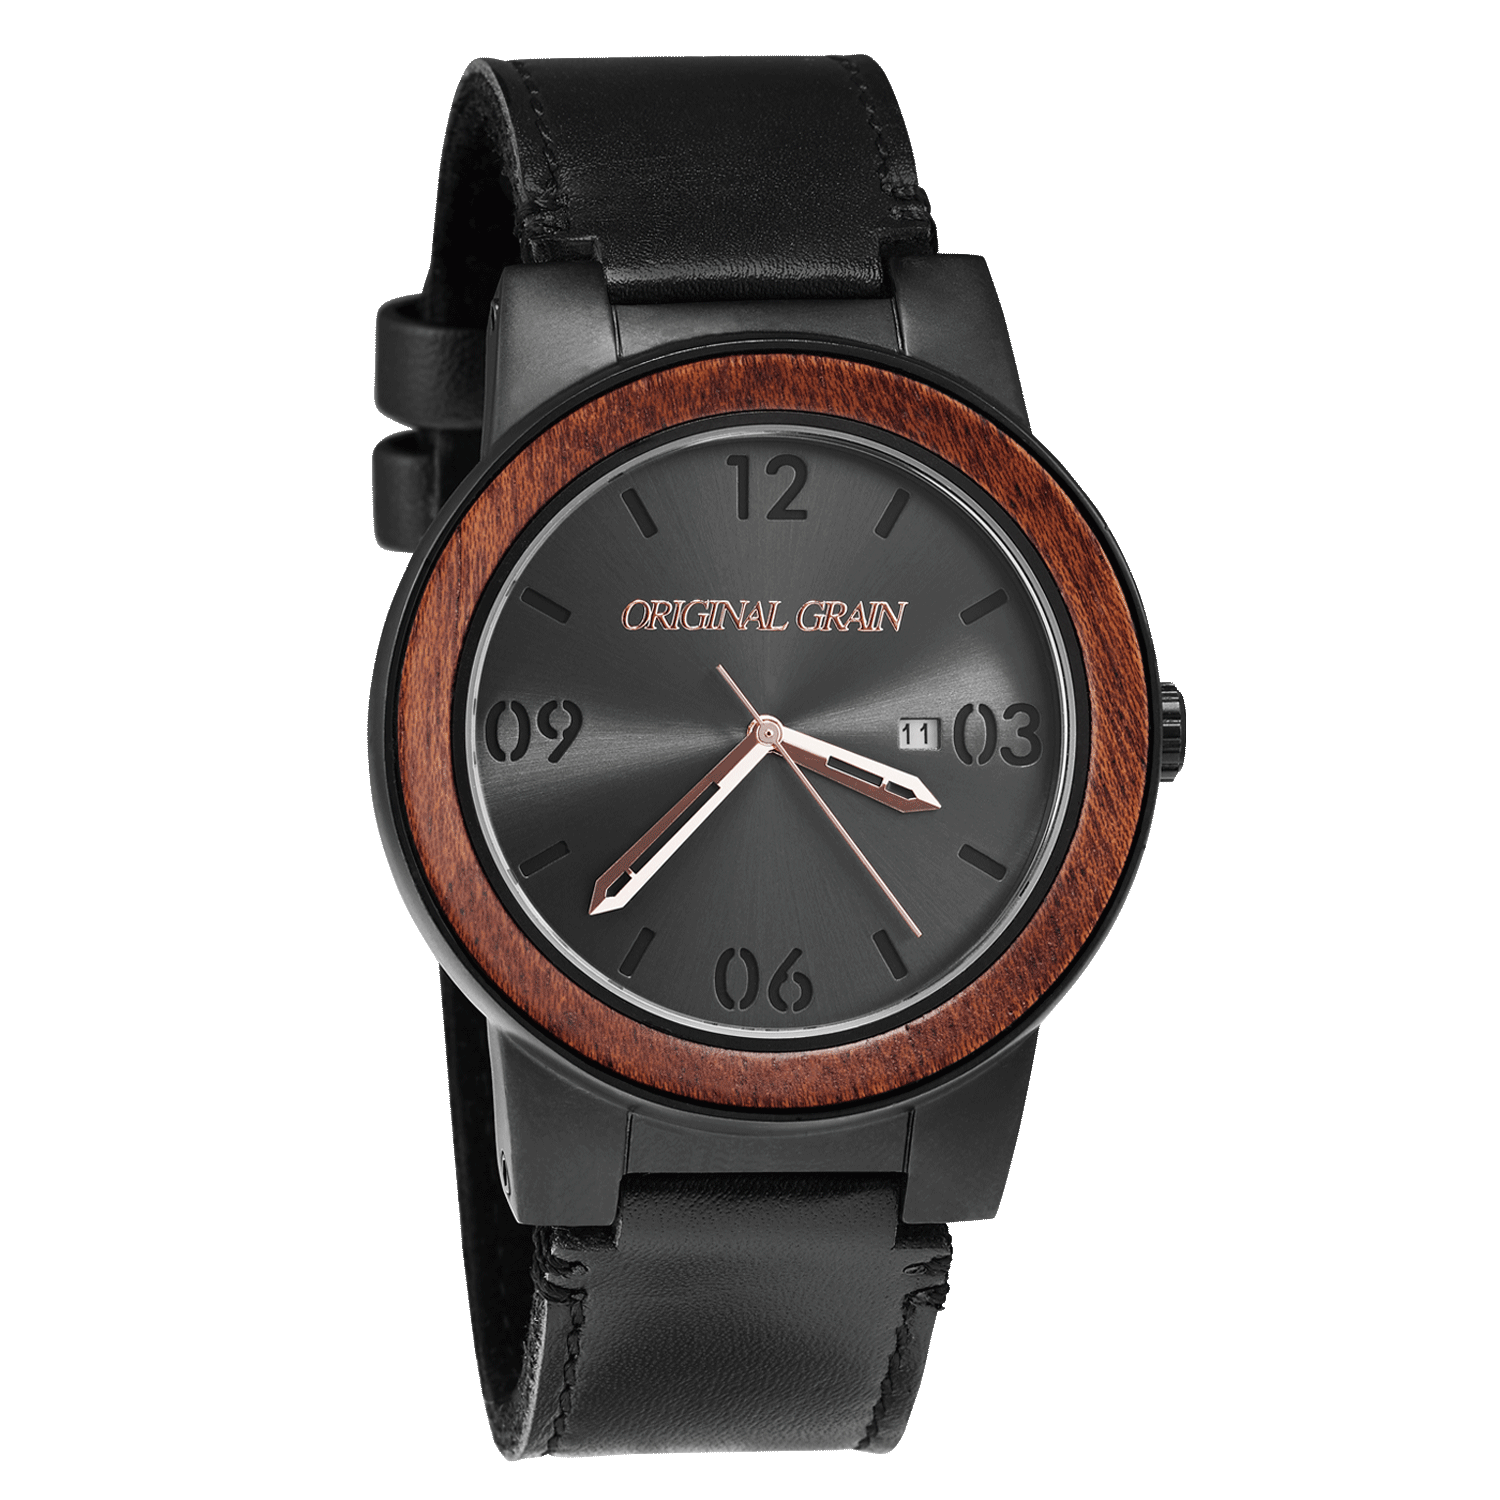 FEATURES All Natural Inlaid SapeleBezel Premium Black Italian Leather Band Mineral Crystal Glass ( Scratch Resistance ) Matte Black 316L...